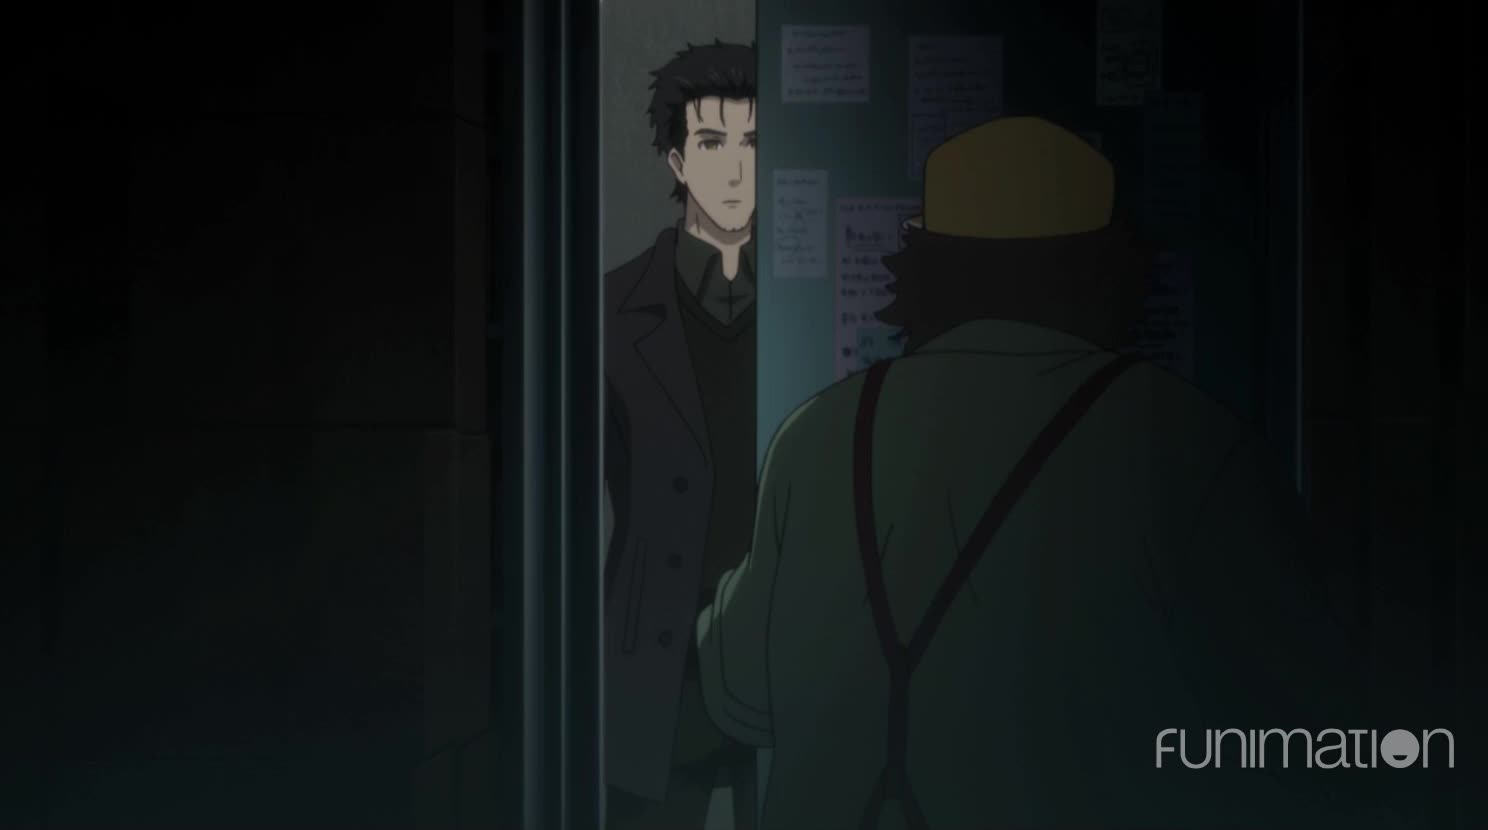 anime, funimation, sci-fi, scifi, steins gate, steins gate 0, steins;gate, steins;gate episode 11, steinsgate, steinsgate 0, What are you doing in here? GIFs